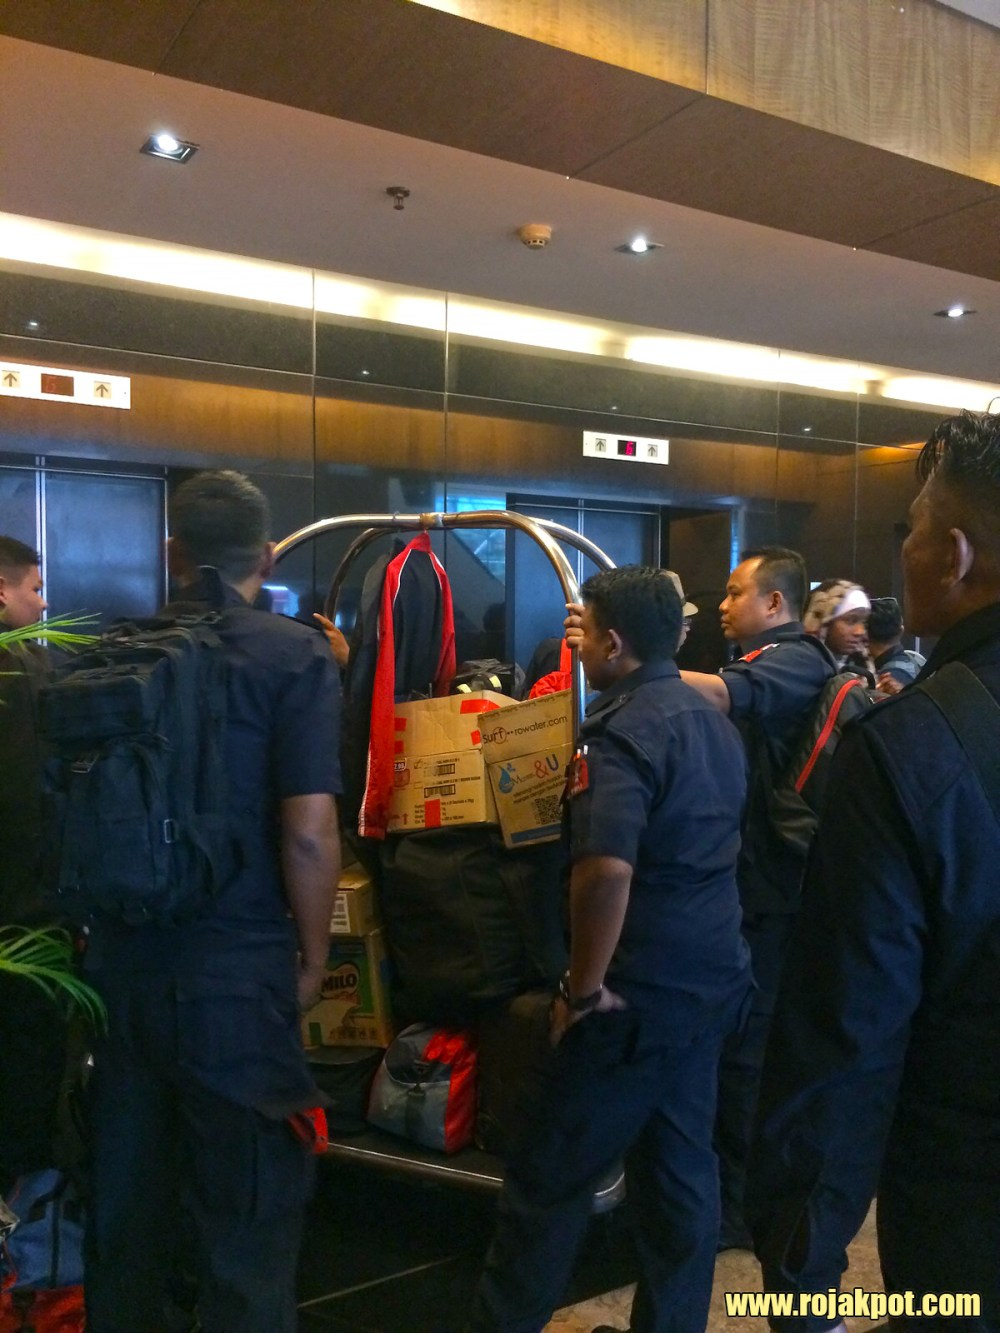 FRU personnel checking in at the Swiss Garden Hotel for Bersih 4.0